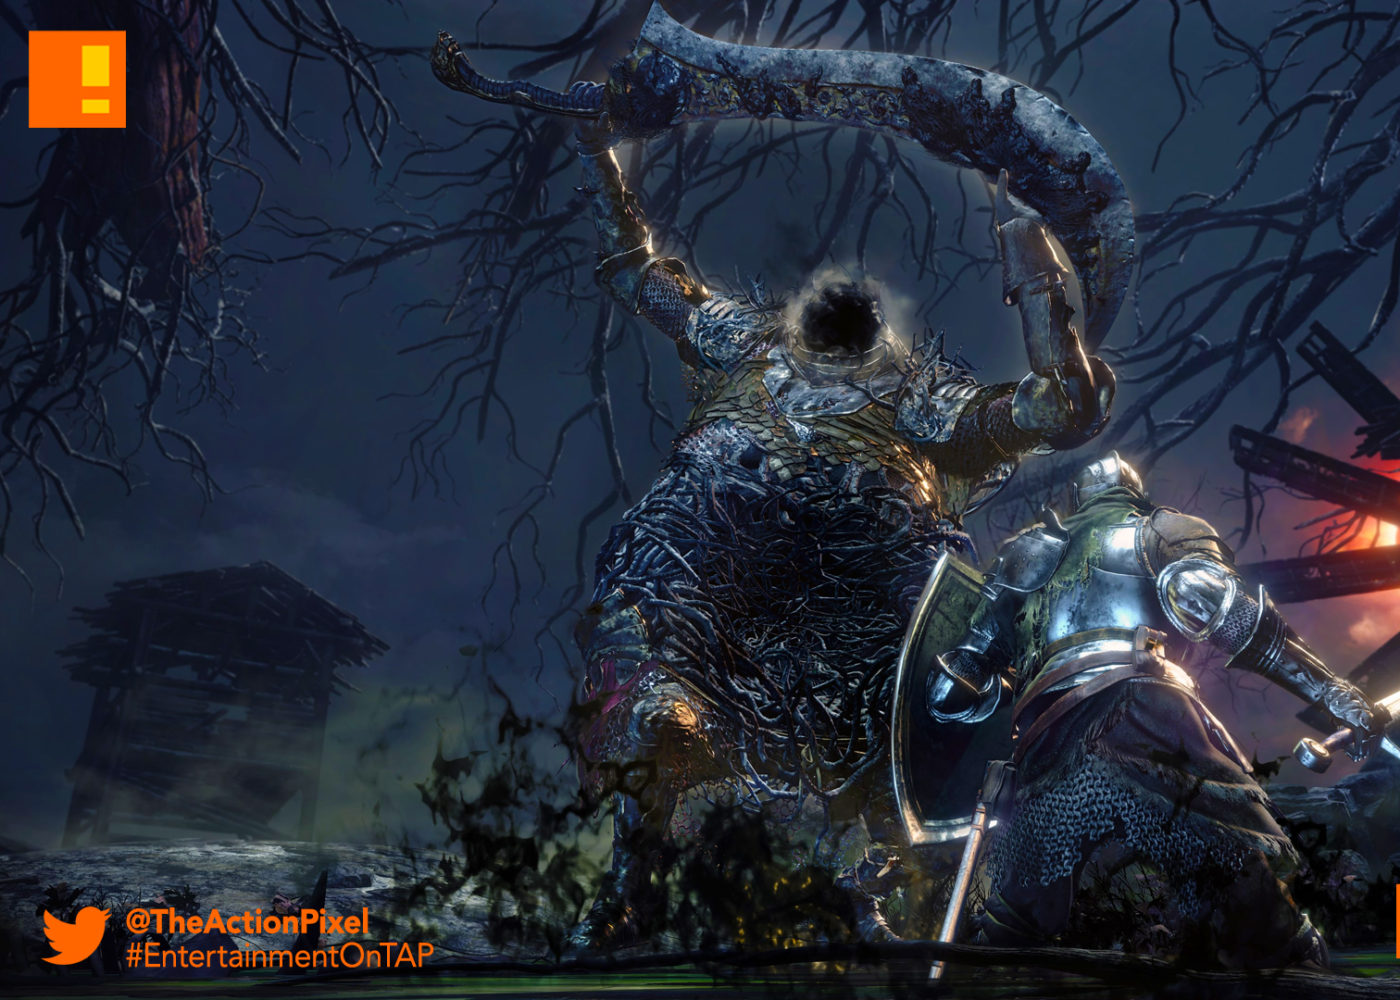 dark souls 3, dark souls III, the ringed city, dragon ruins, grand roof, the action pixel, entertainment on tap, from software, bandai namco entertainment